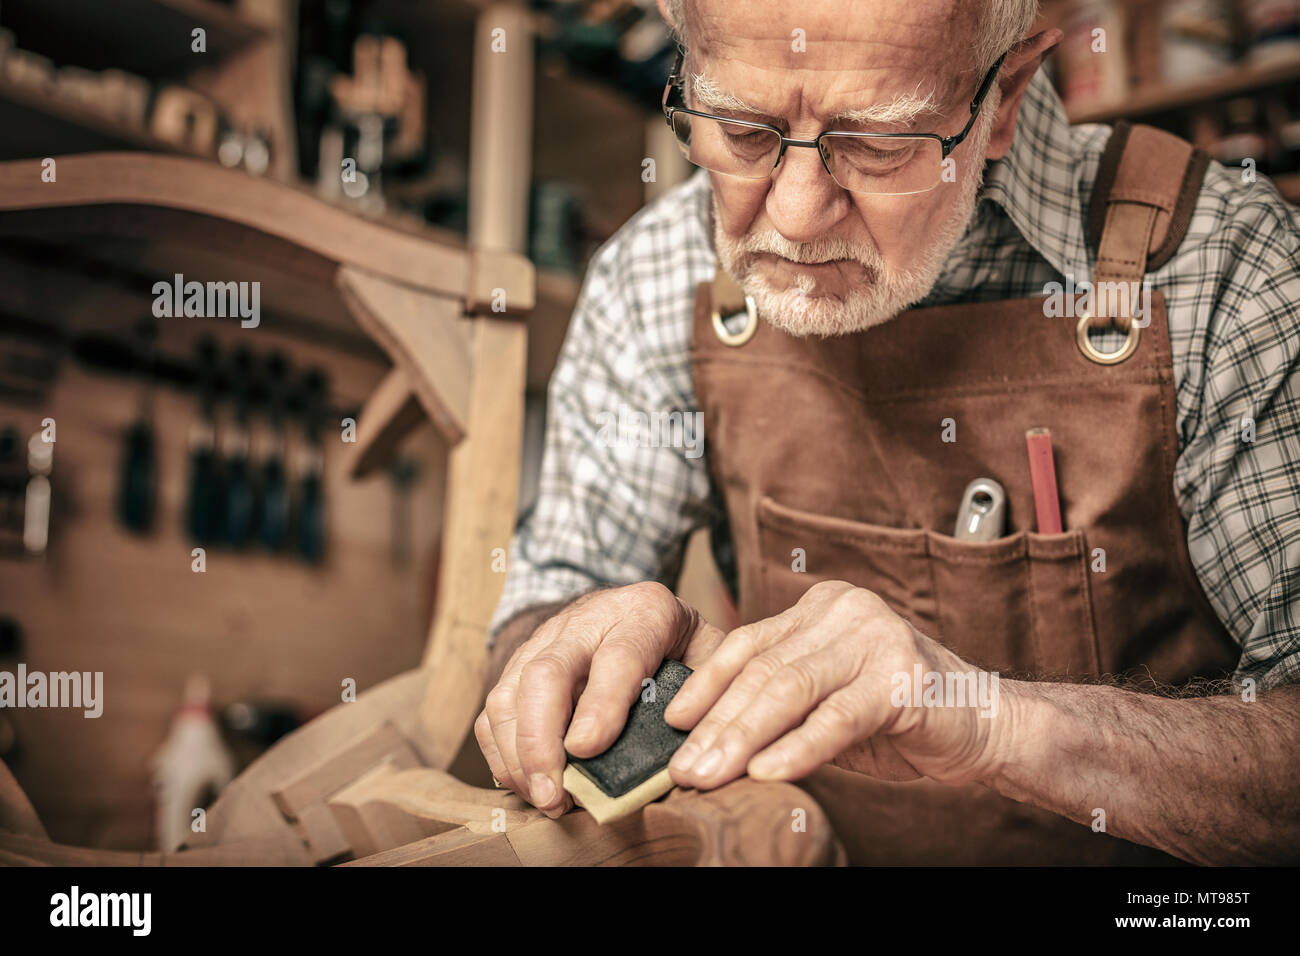 carpenter engaged in polishing an unfinished chair - Stock Image